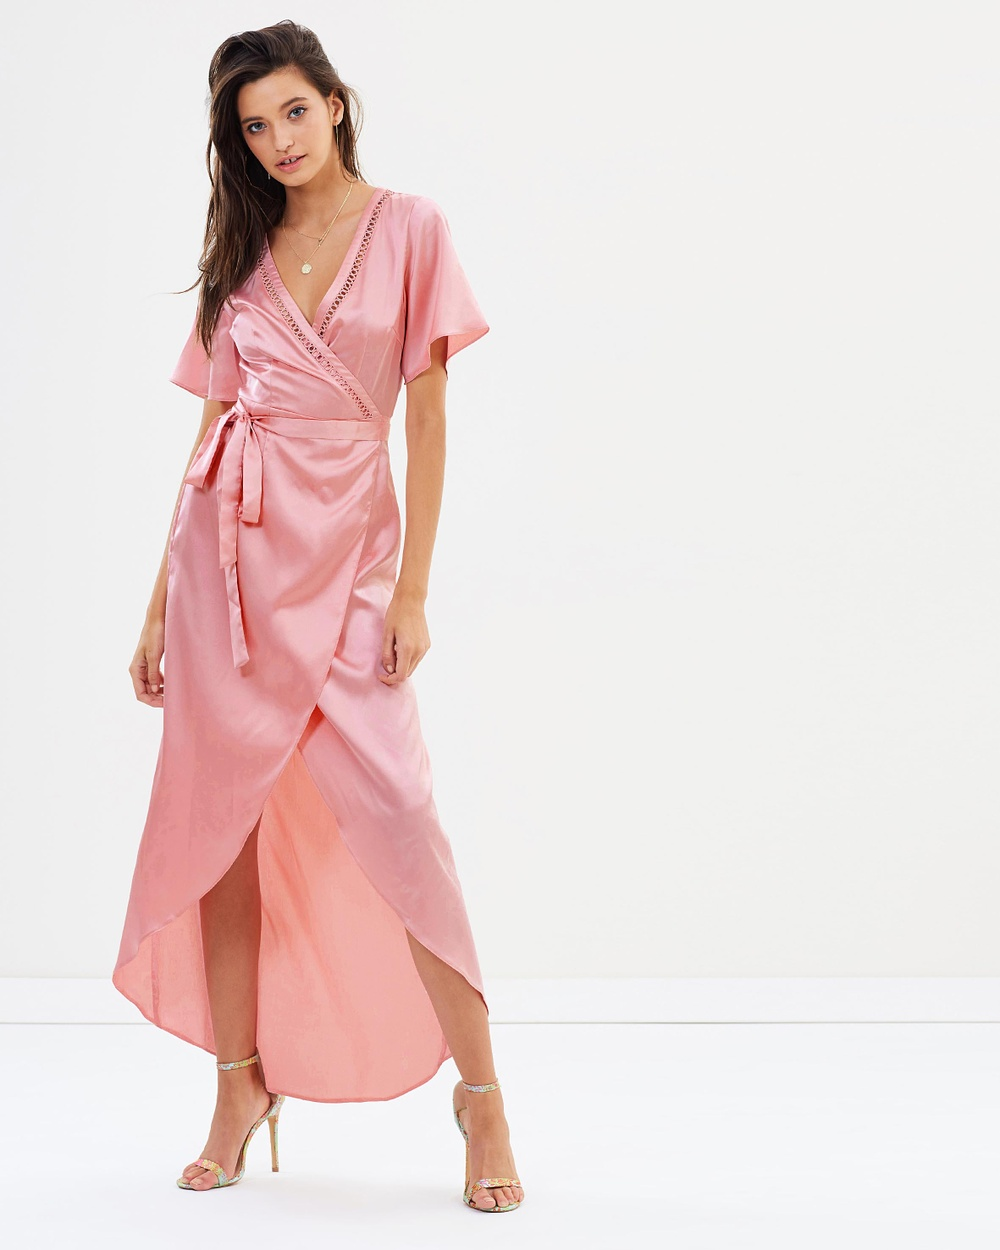 Dazie Stella Wrap Silky Dress Dresses Pink Stella Wrap Silky Dress